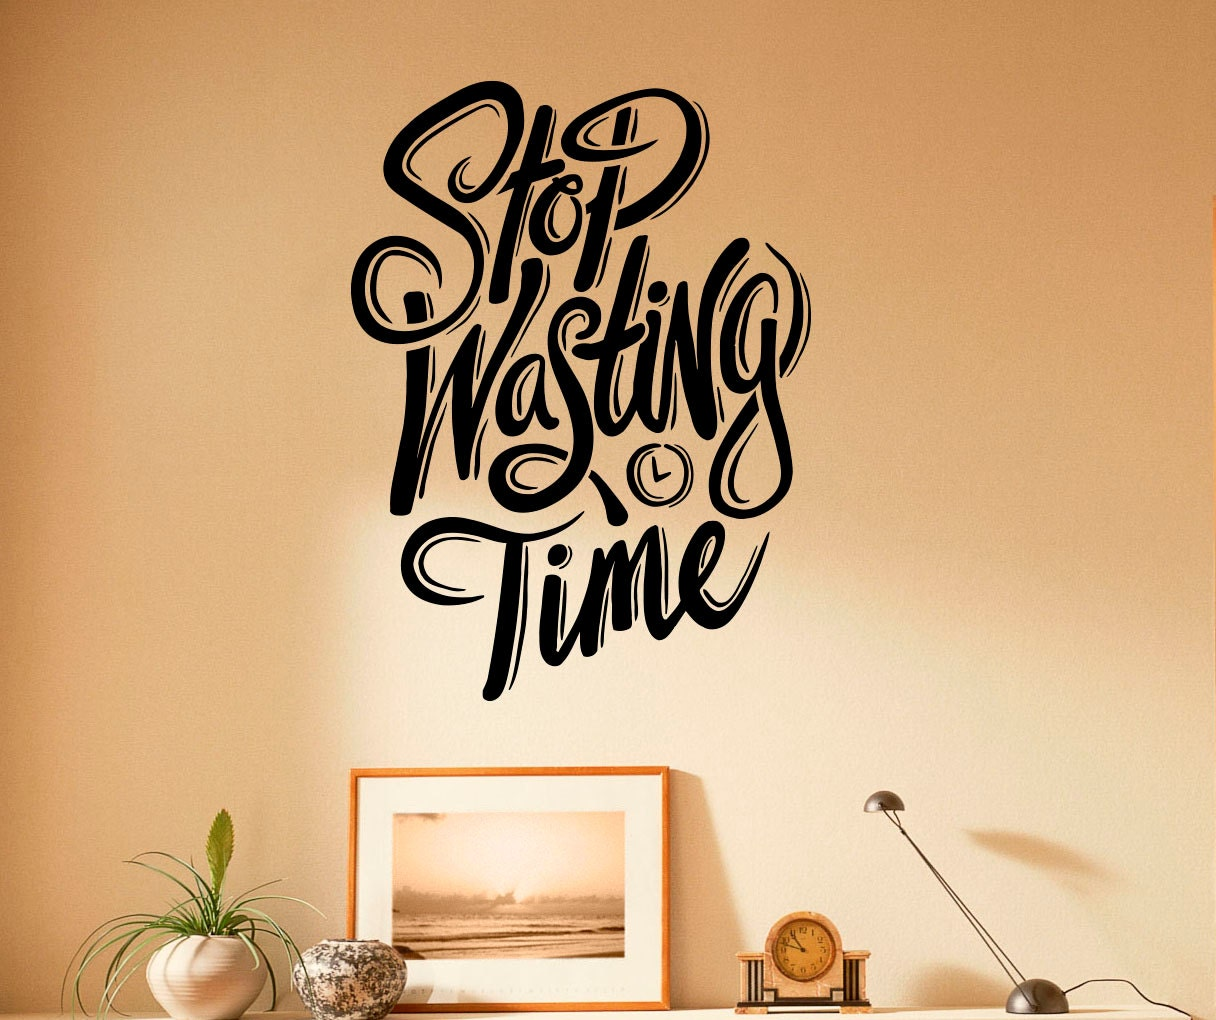 Stop Wasting Time Quotes: Stop Wasting Time Motivation Quote Wall Decal Vinyl